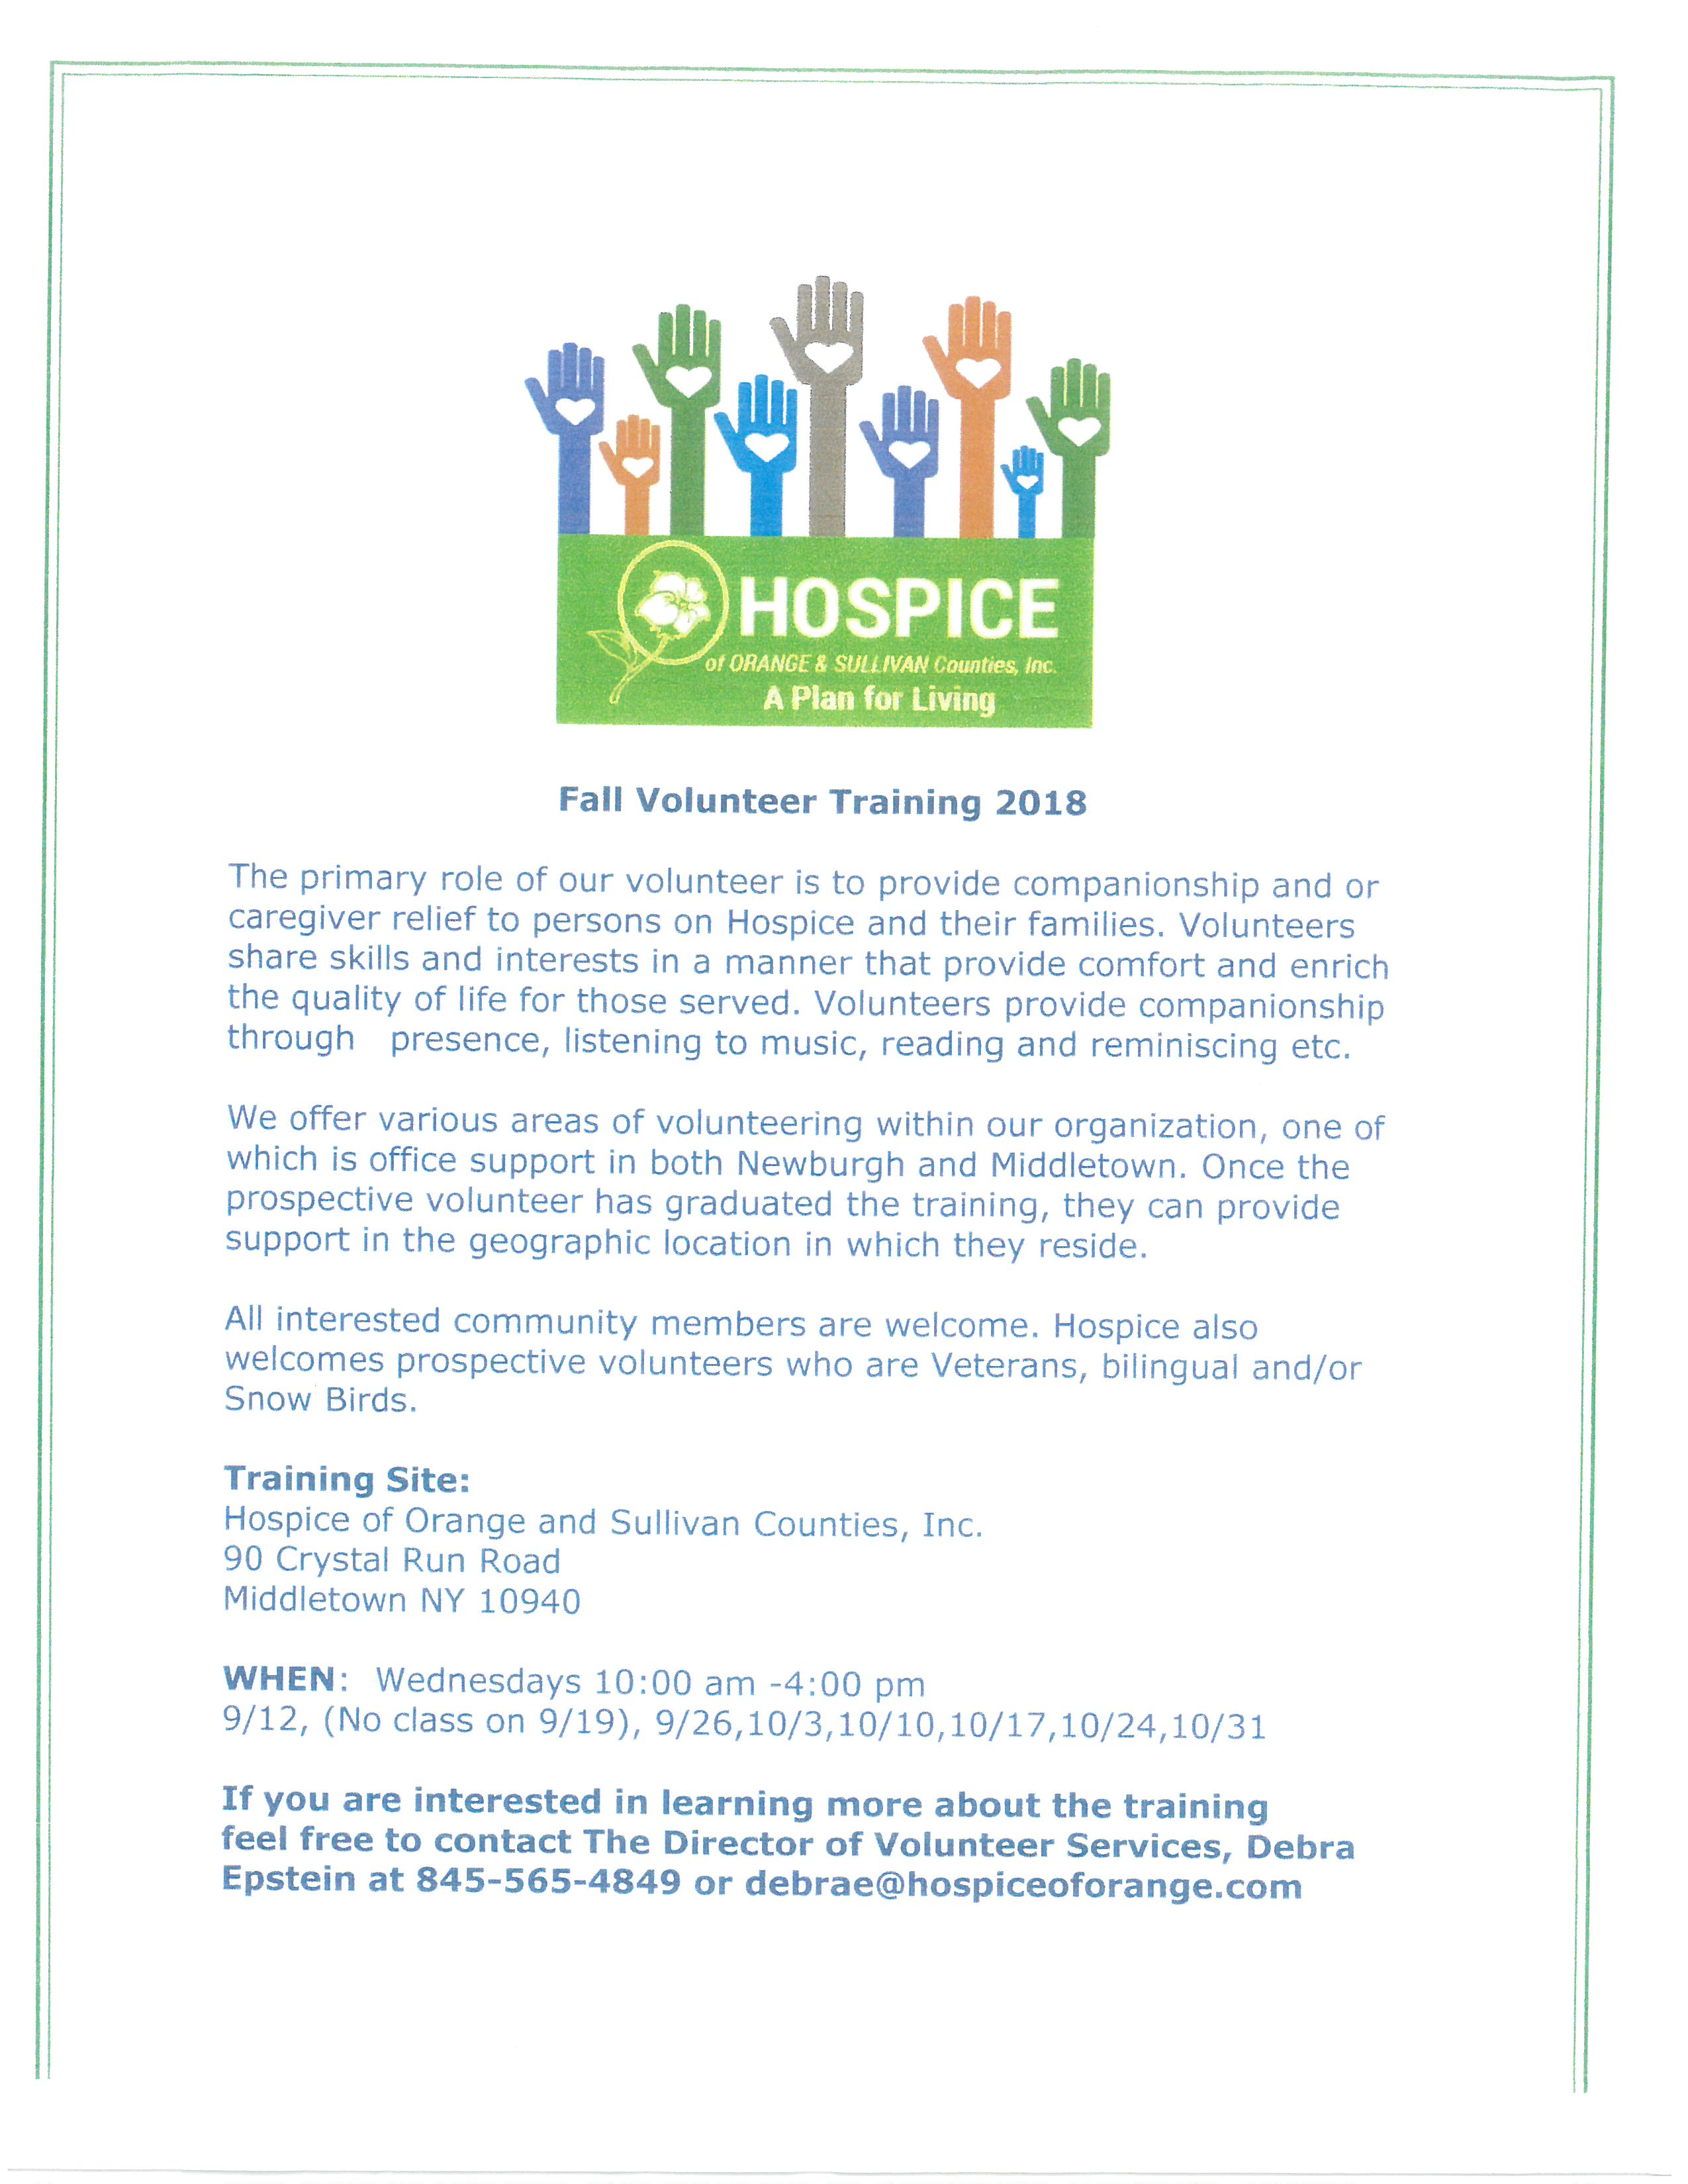 Hospice Volunteer Training 2018